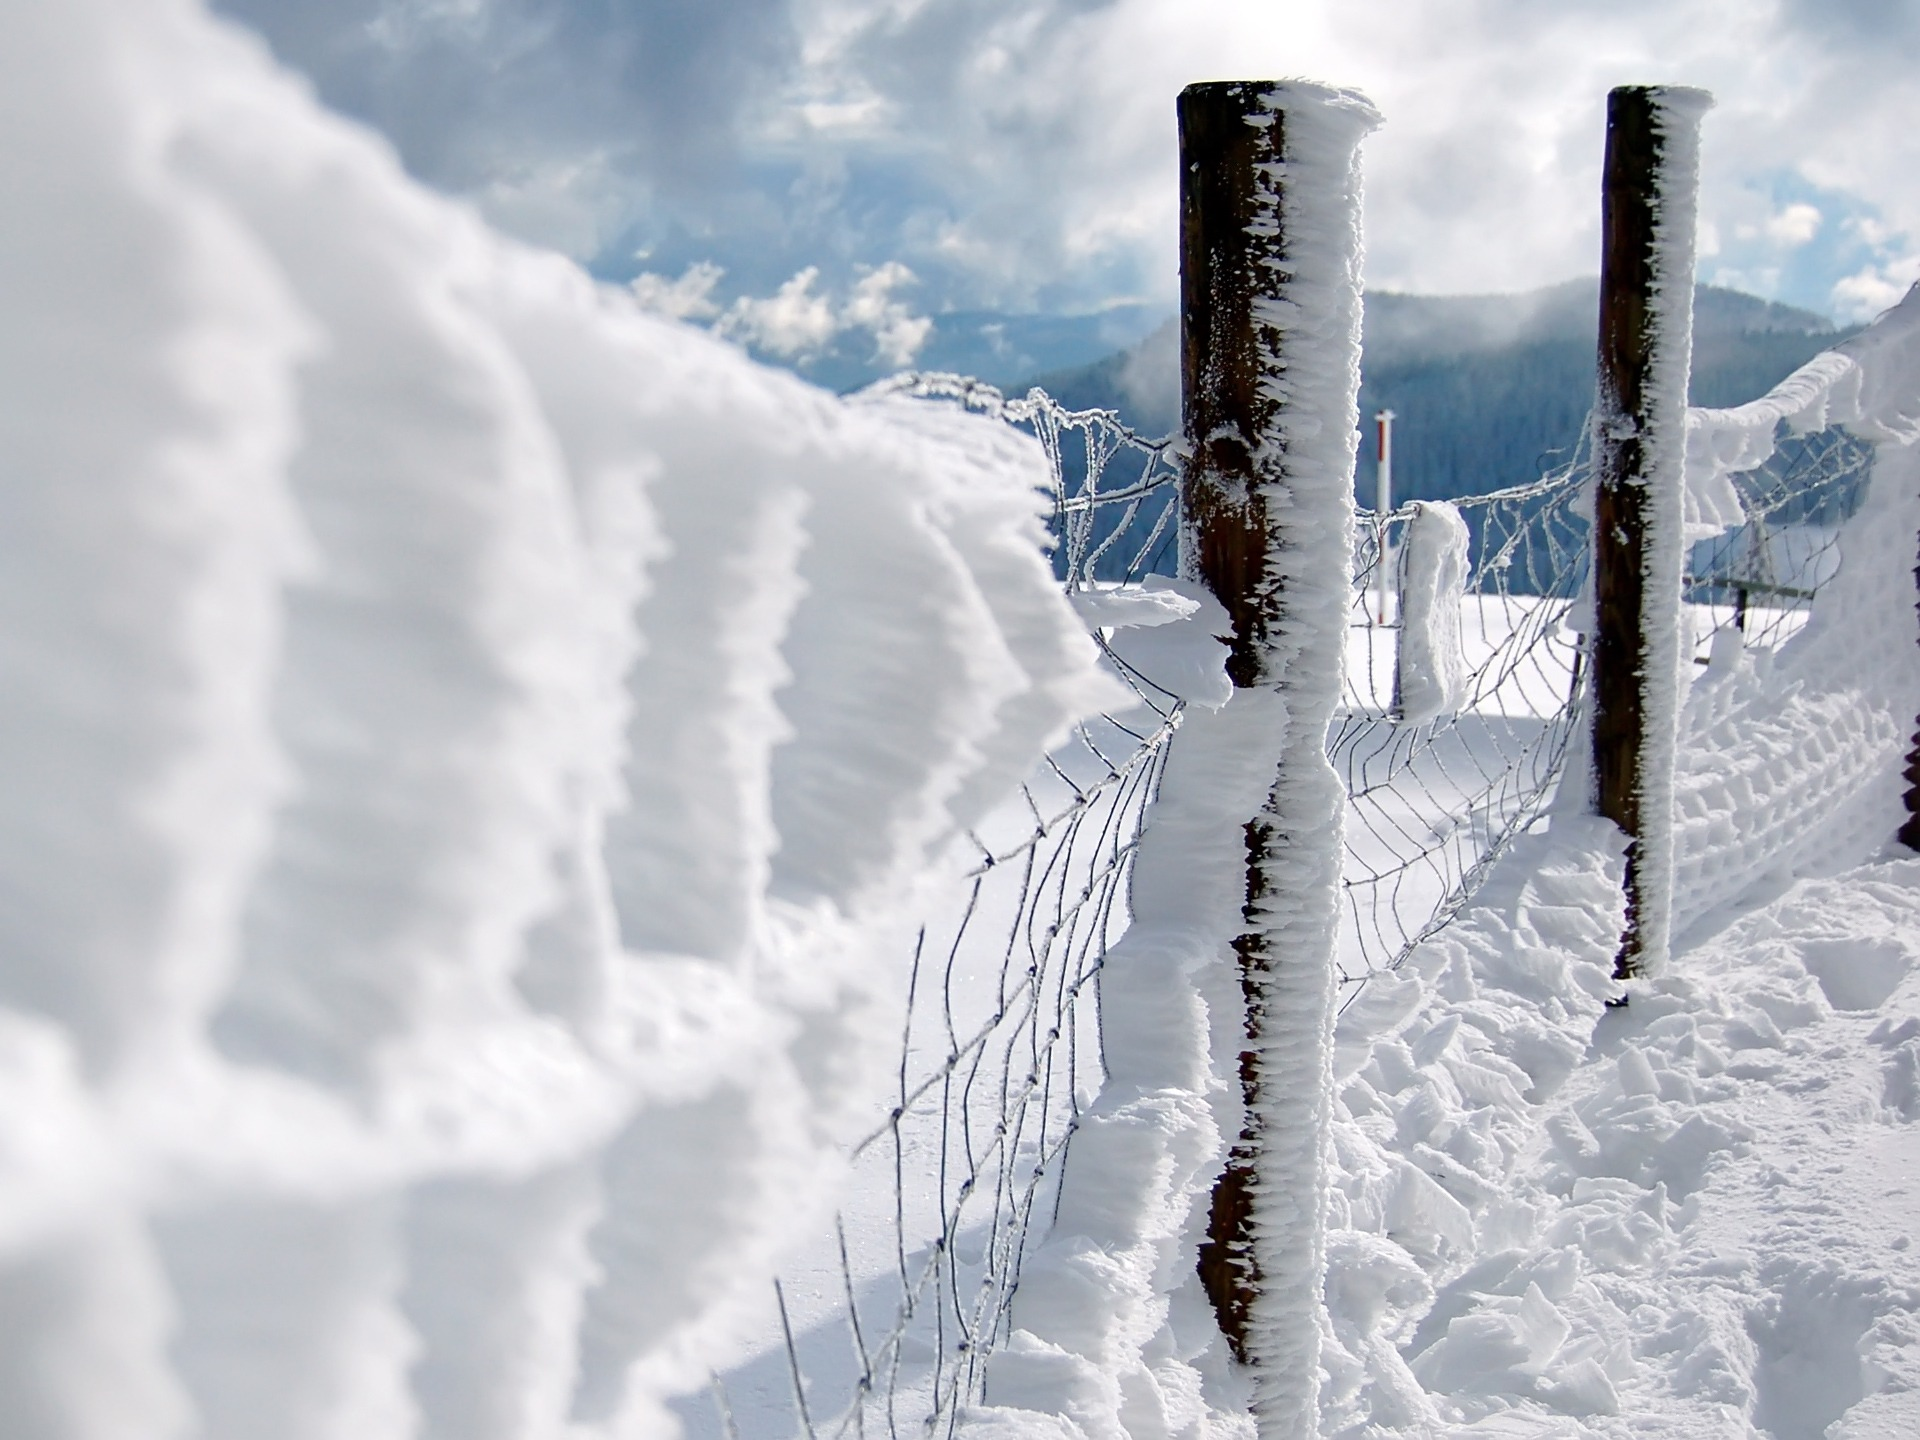 First Snow Wallpaper Winter Nature Wallpapers in jpg format for free ...